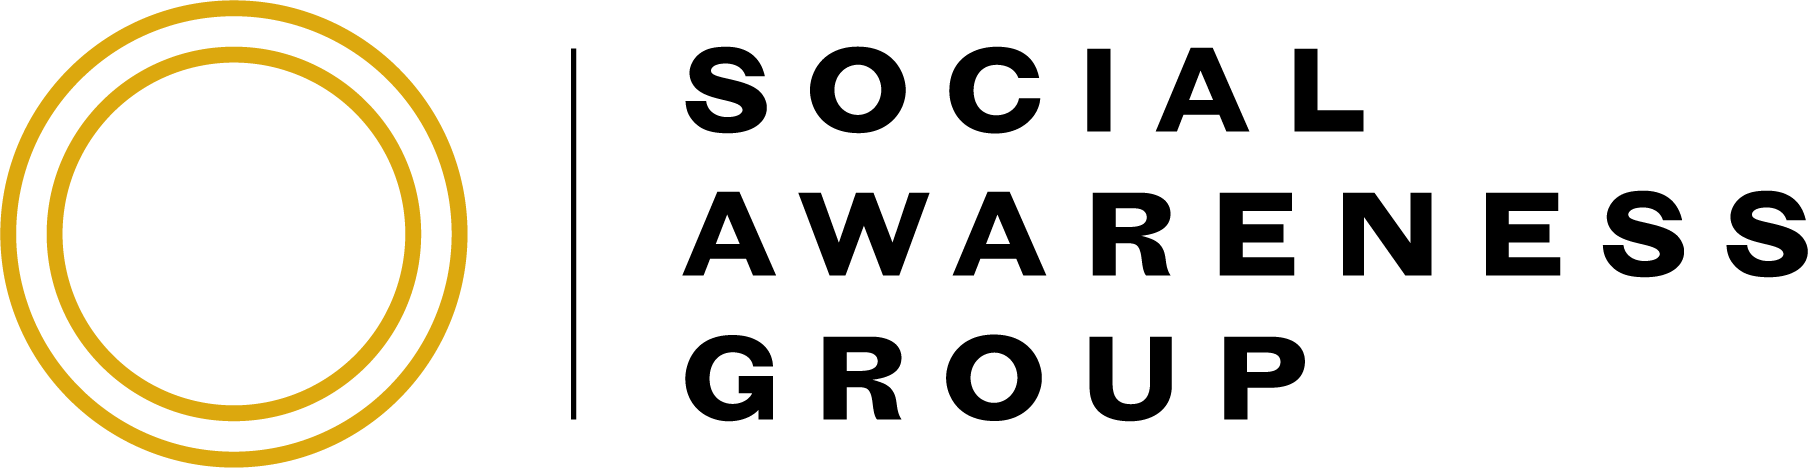 Social Awareness Group